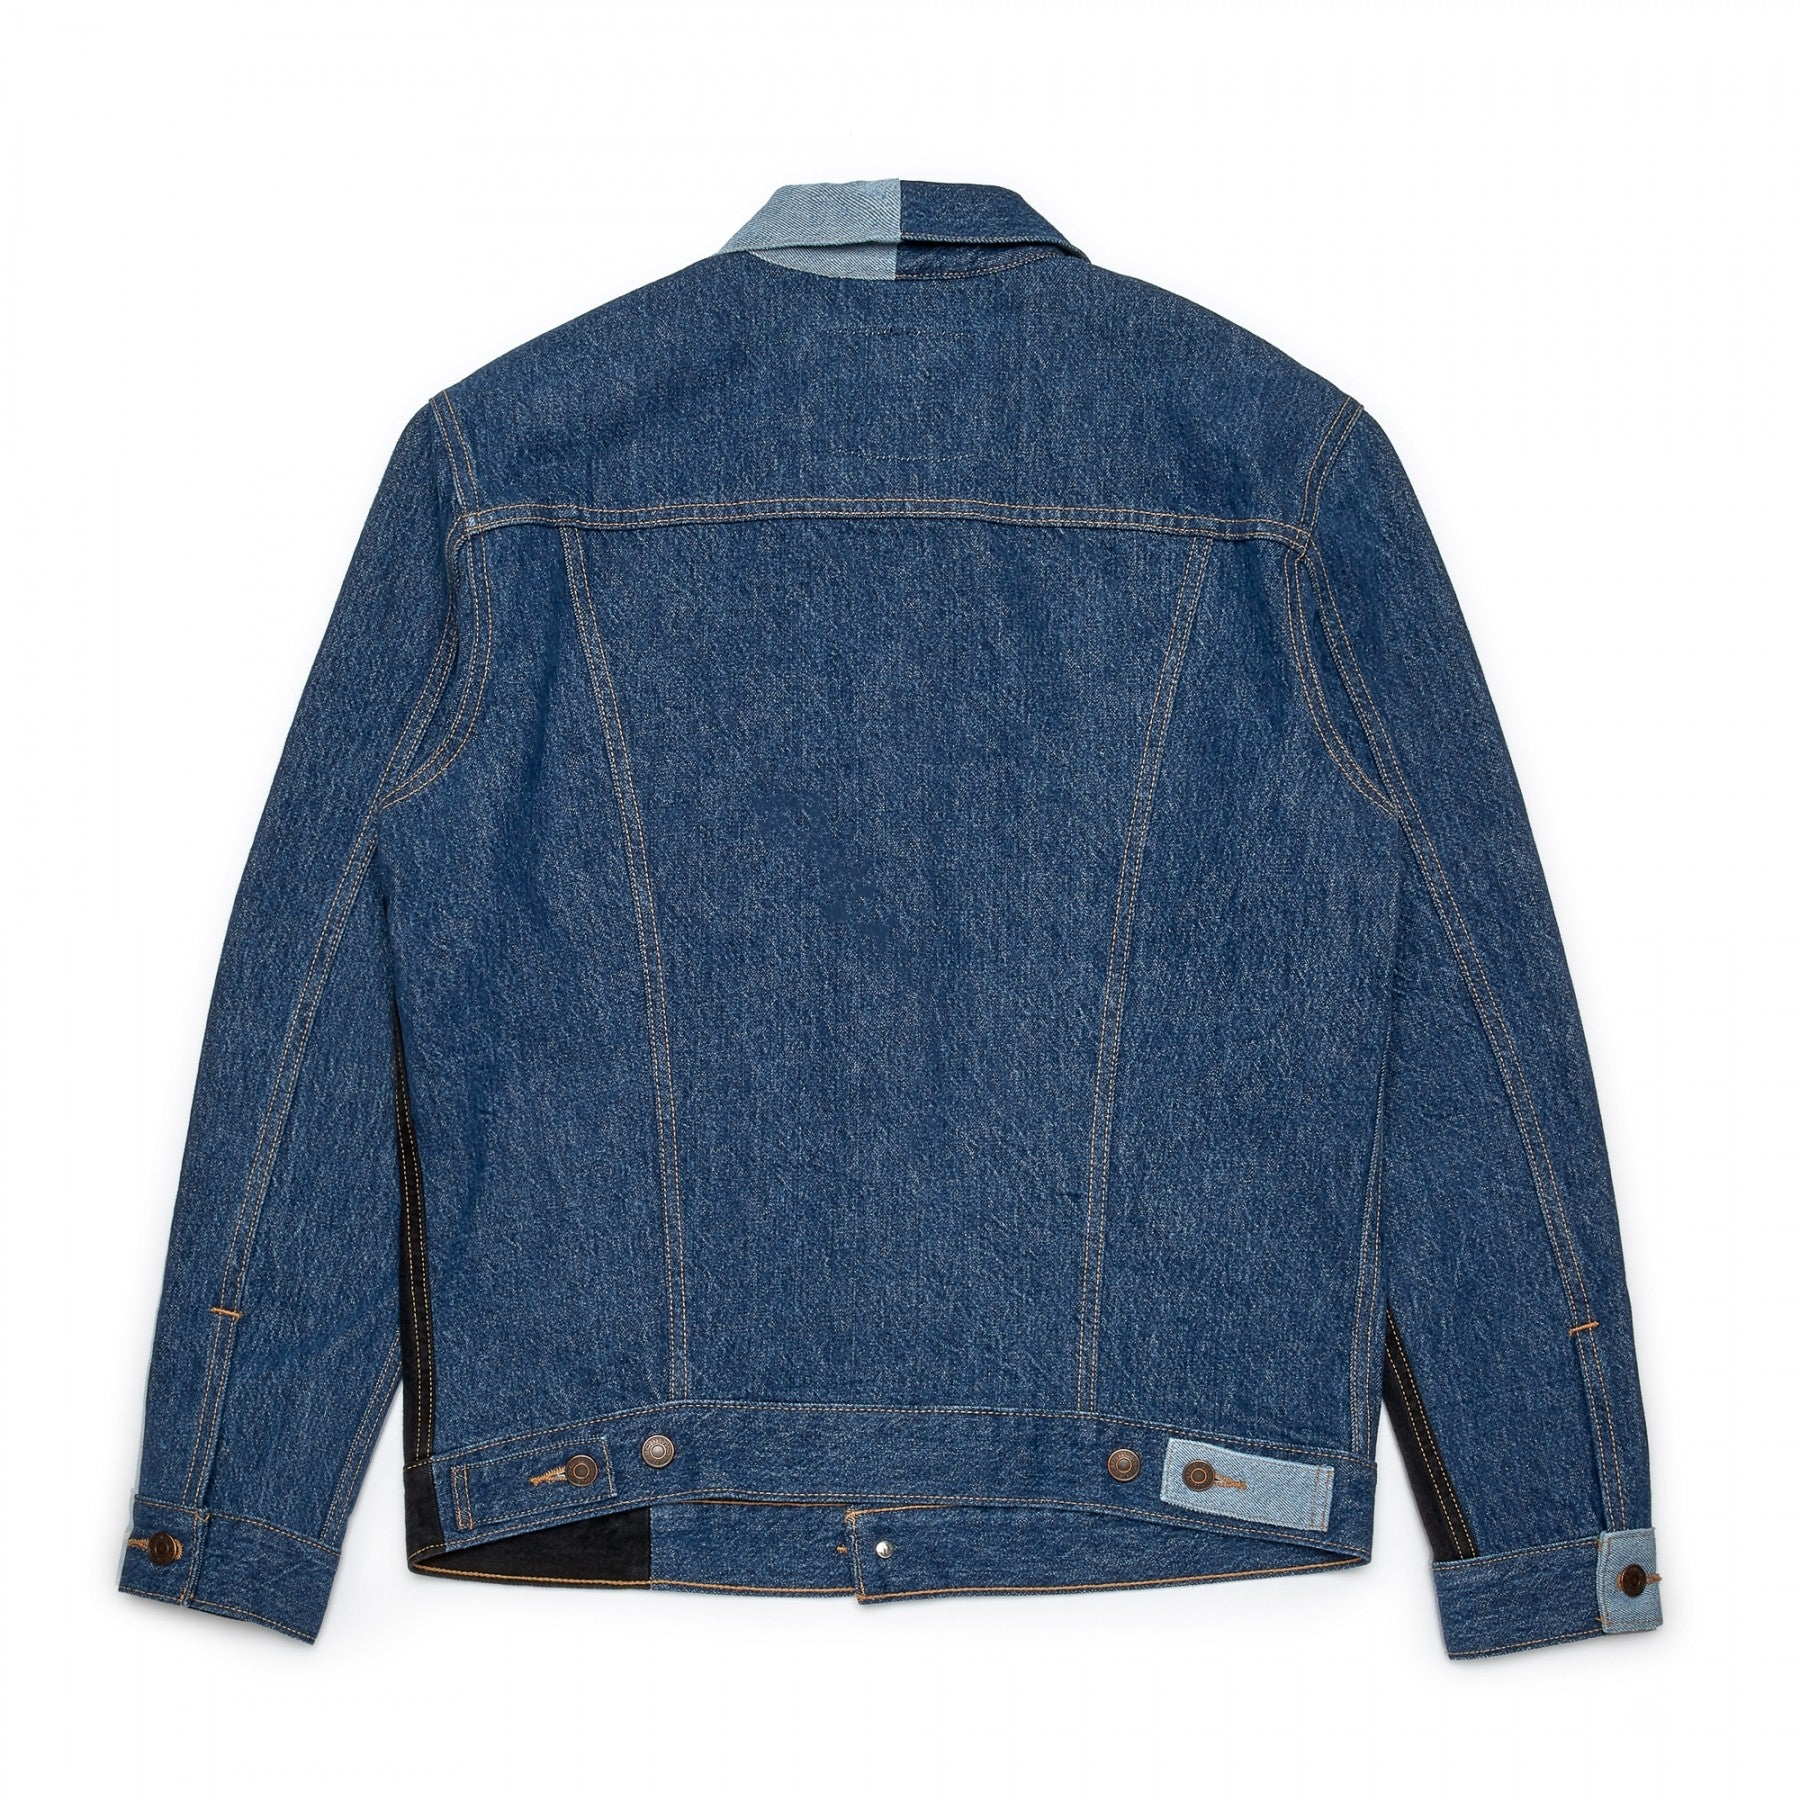 GOSHA X LEVIS JACKET PATCHWORK - DENIM